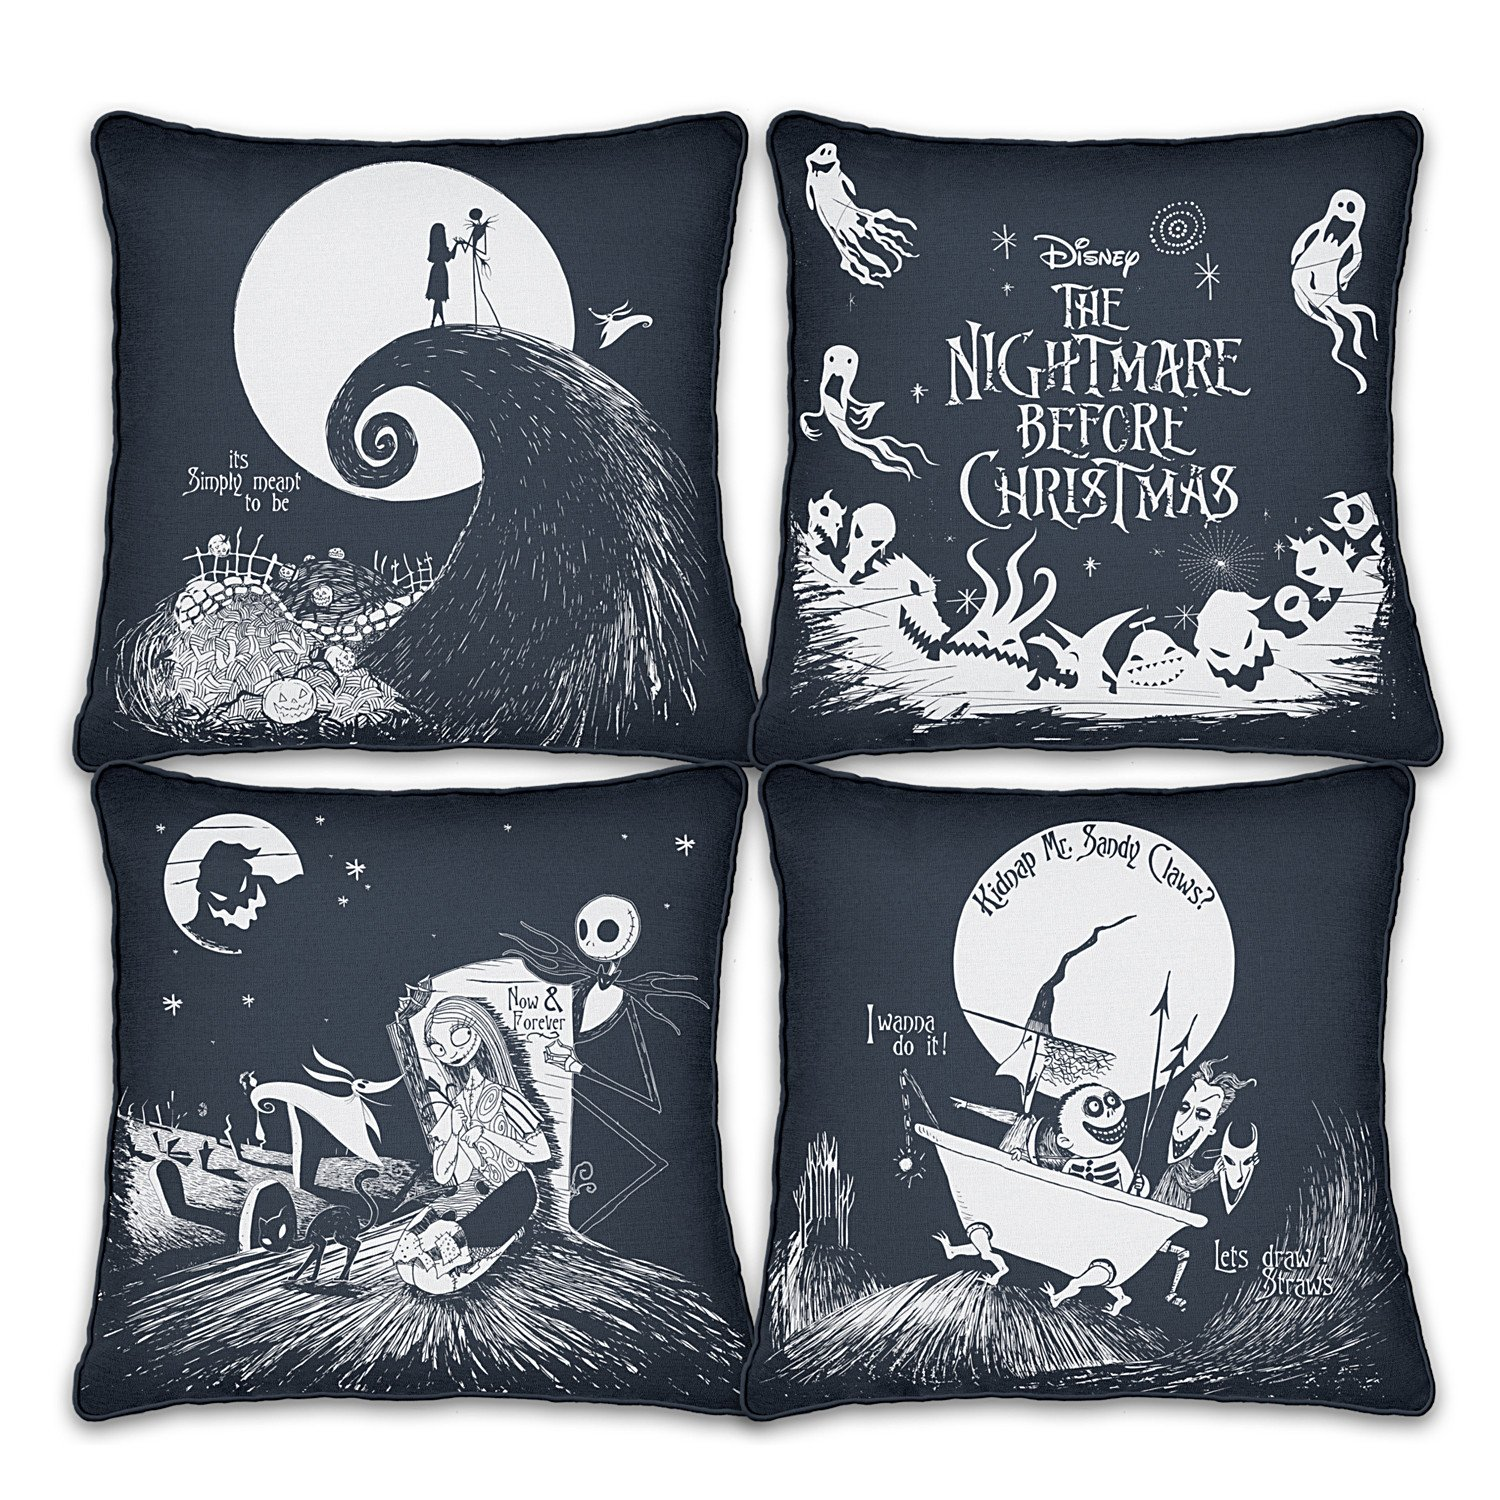 Disney Tim Burton's The Nightmare Before Christmas Black And White Pillow Set by The Bradford Exchange